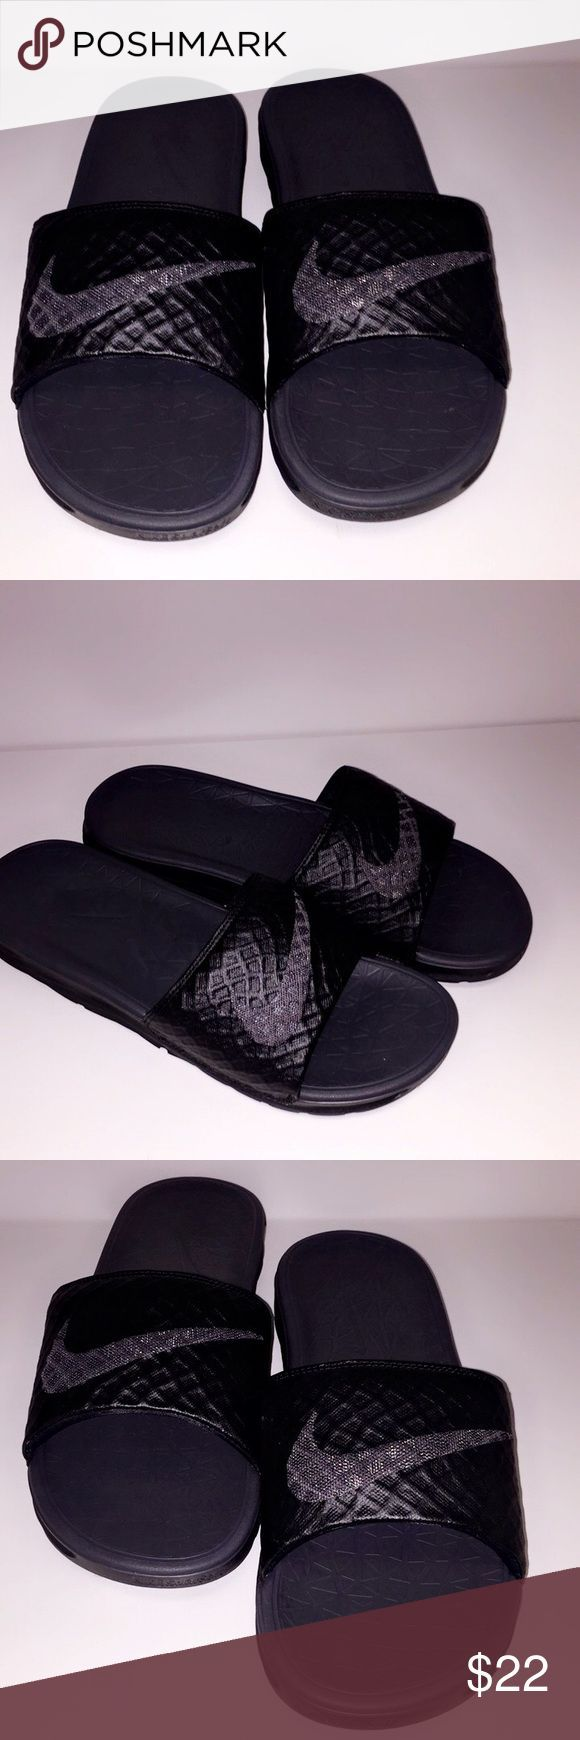 outlet store 266a9 8775e Mens Nike Benassi JDI Solarsoft Slides Featuring a padded lining and  grooved foo - Nike Benassi - Latest   trending Nike Benassi  nike  benassi   nikebenassi ...